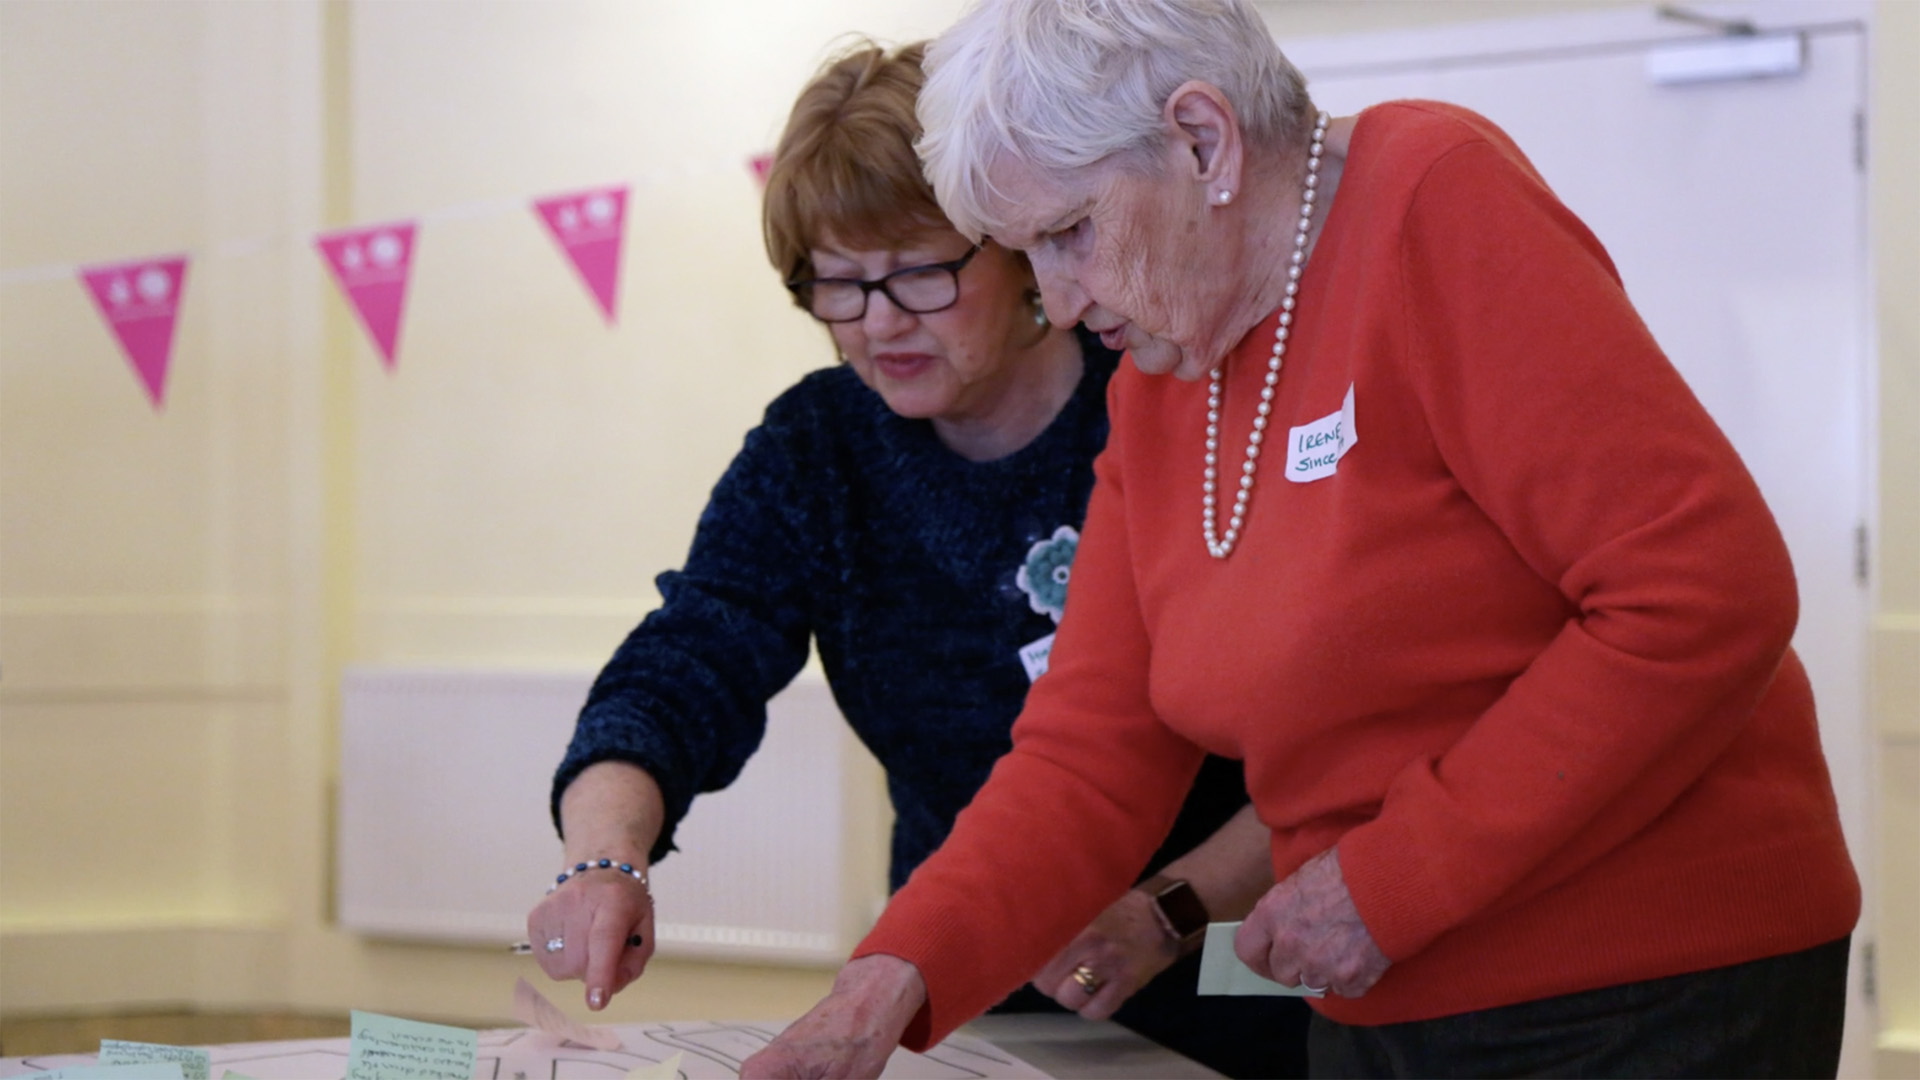 Two elderly people work together to place post-it notes on a hand drawn map